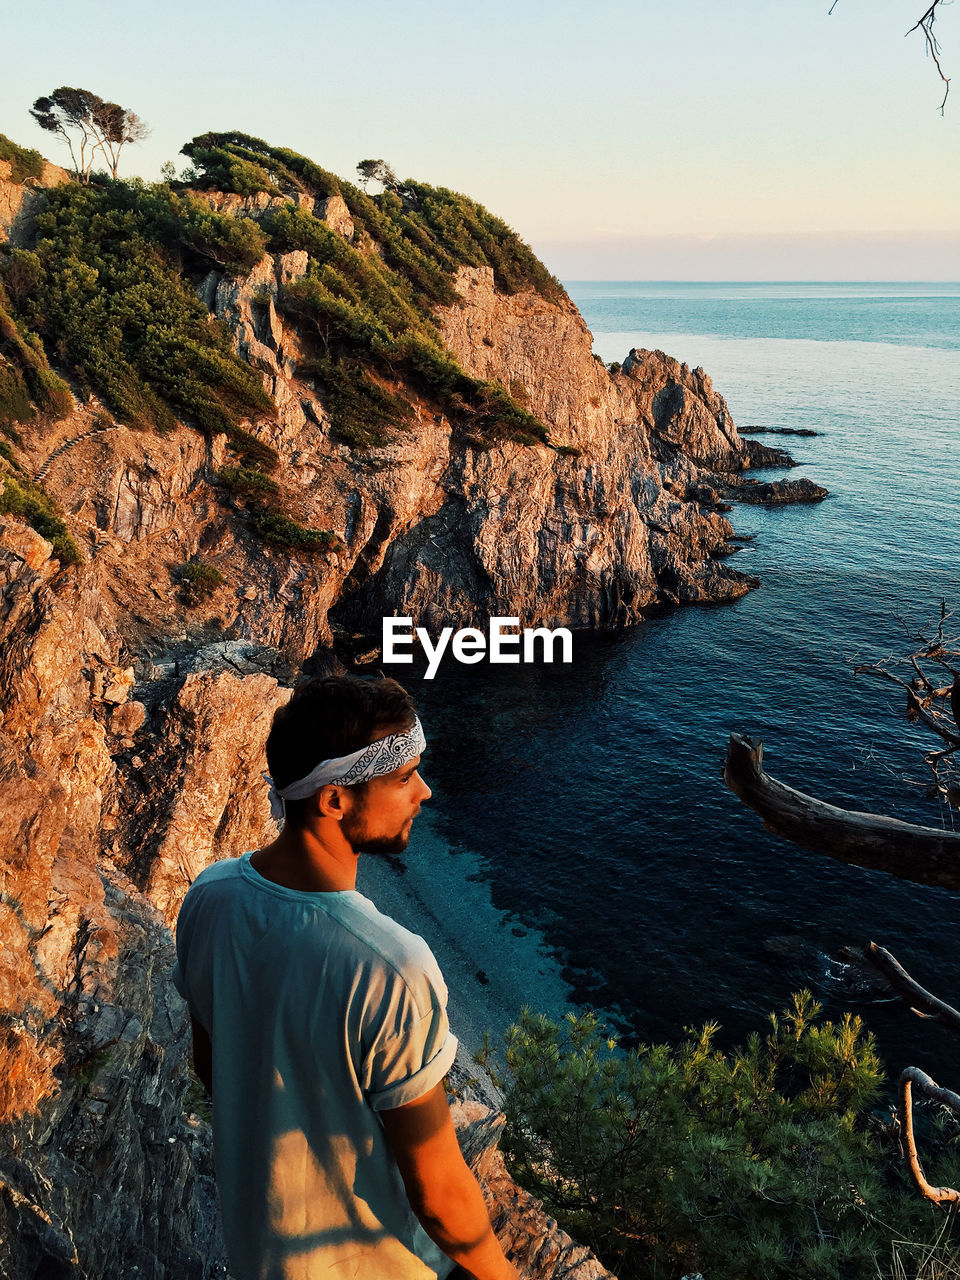 water, leisure activity, sea, one person, lifestyles, beauty in nature, real people, scenics - nature, rock, solid, rock - object, sky, nature, men, tranquility, horizon, casual clothing, horizon over water, looking at view, outdoors